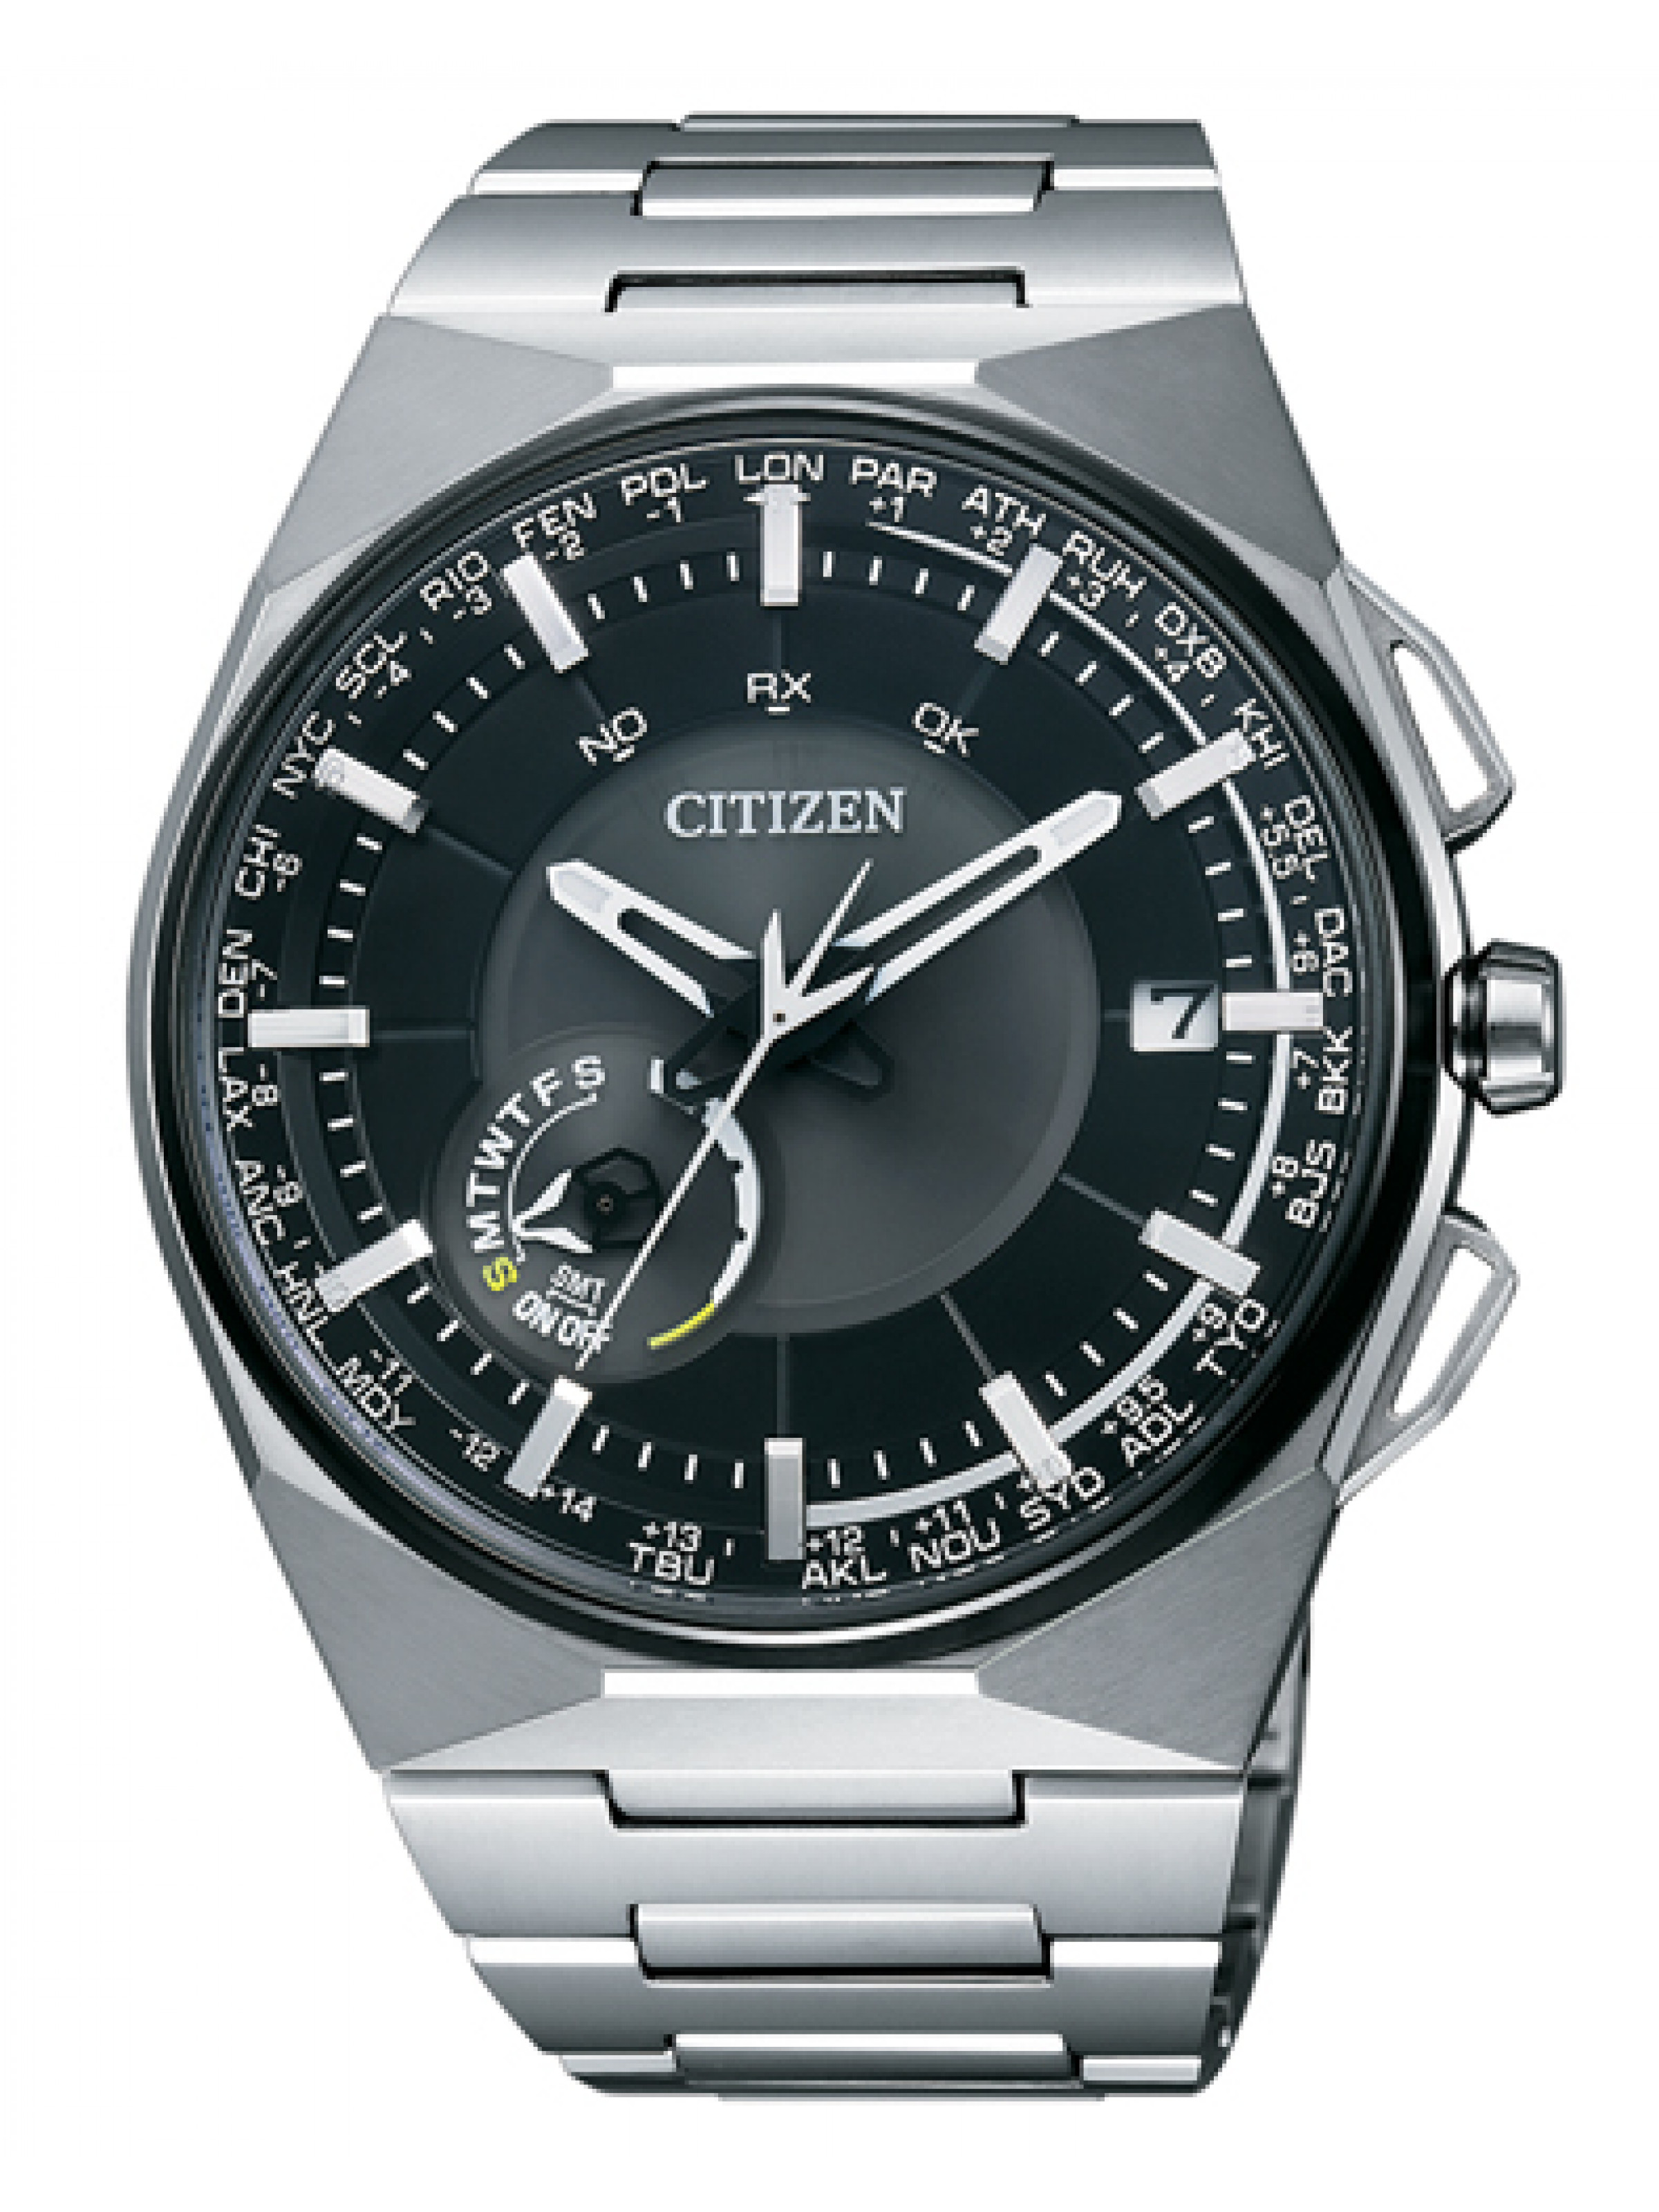 Citizen SATELLITE WAVE F100 CC2006-53E